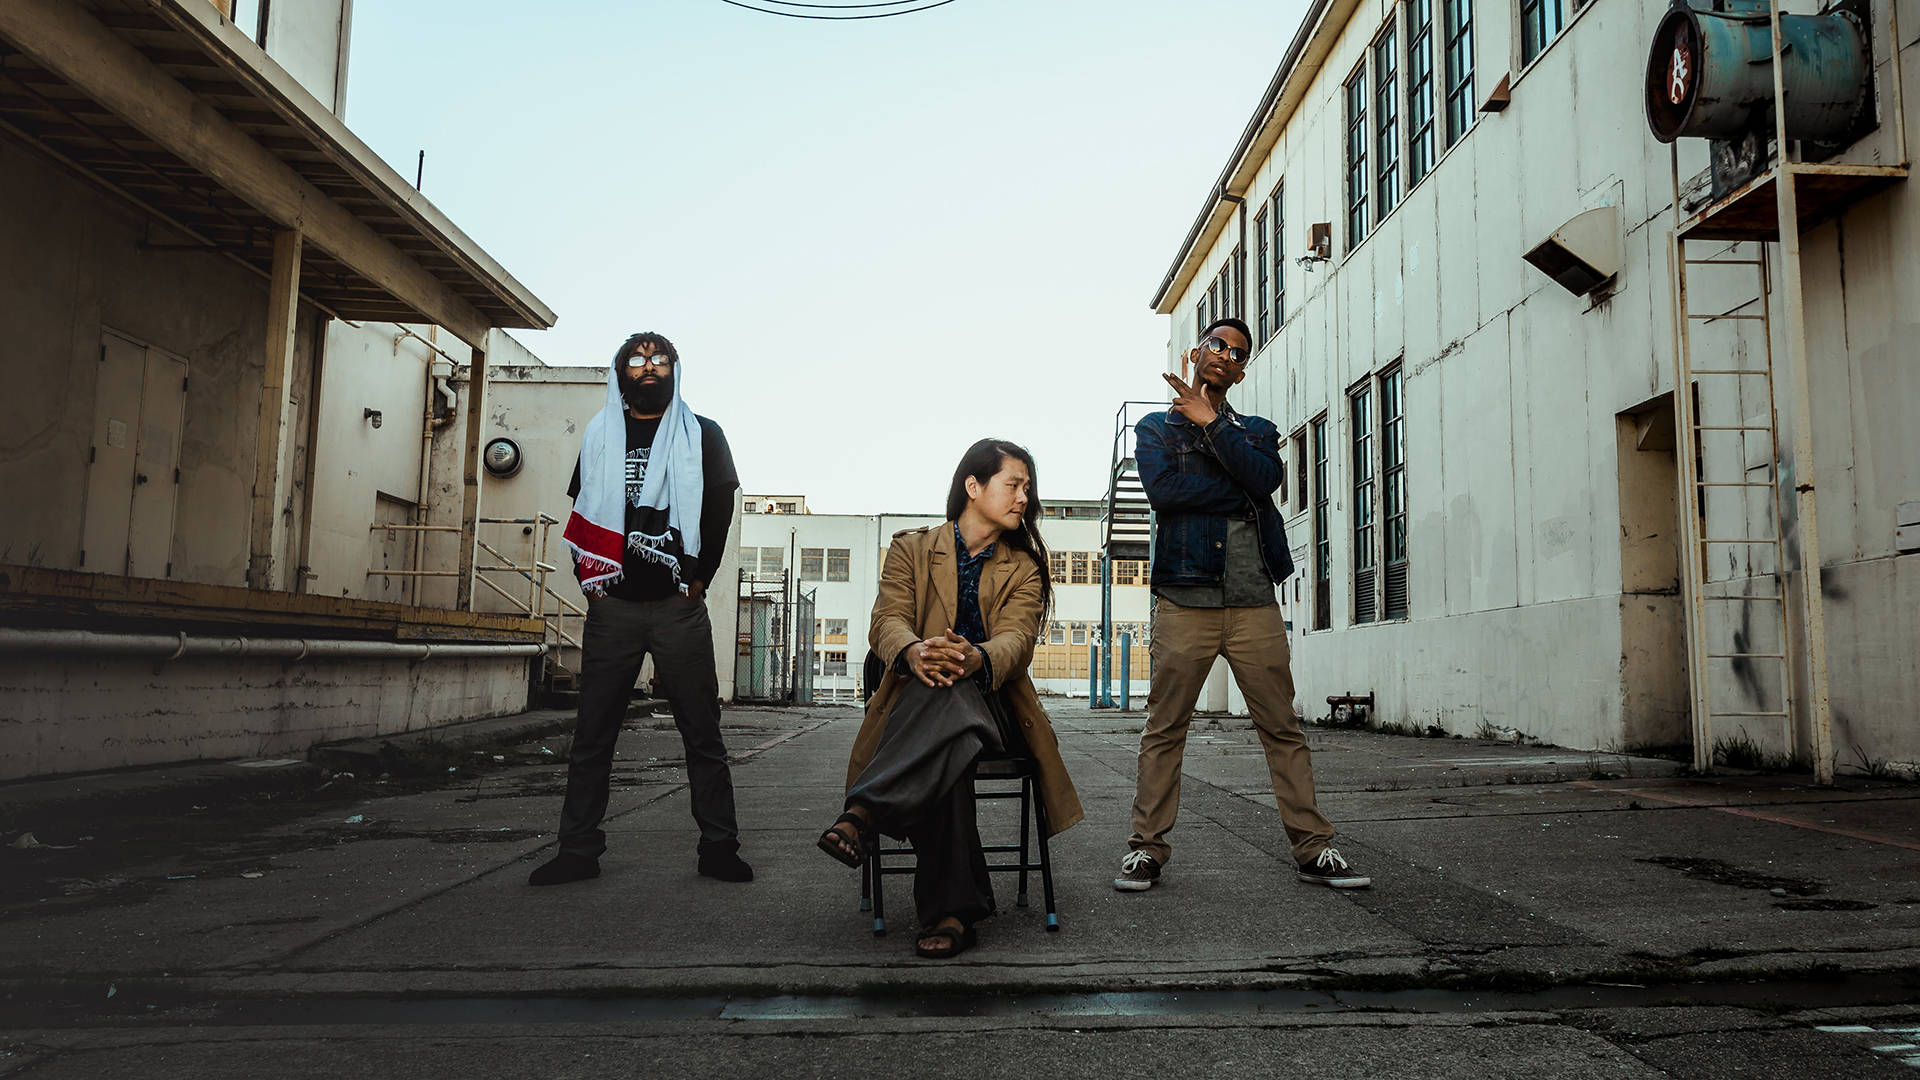 Led by composer JooWan Kim (center), Oakland hip-hop orchestra Ensemble Mik Nawooj composed the theme song for this year's United Nations Global People's Summit.  Matthew Evearitt